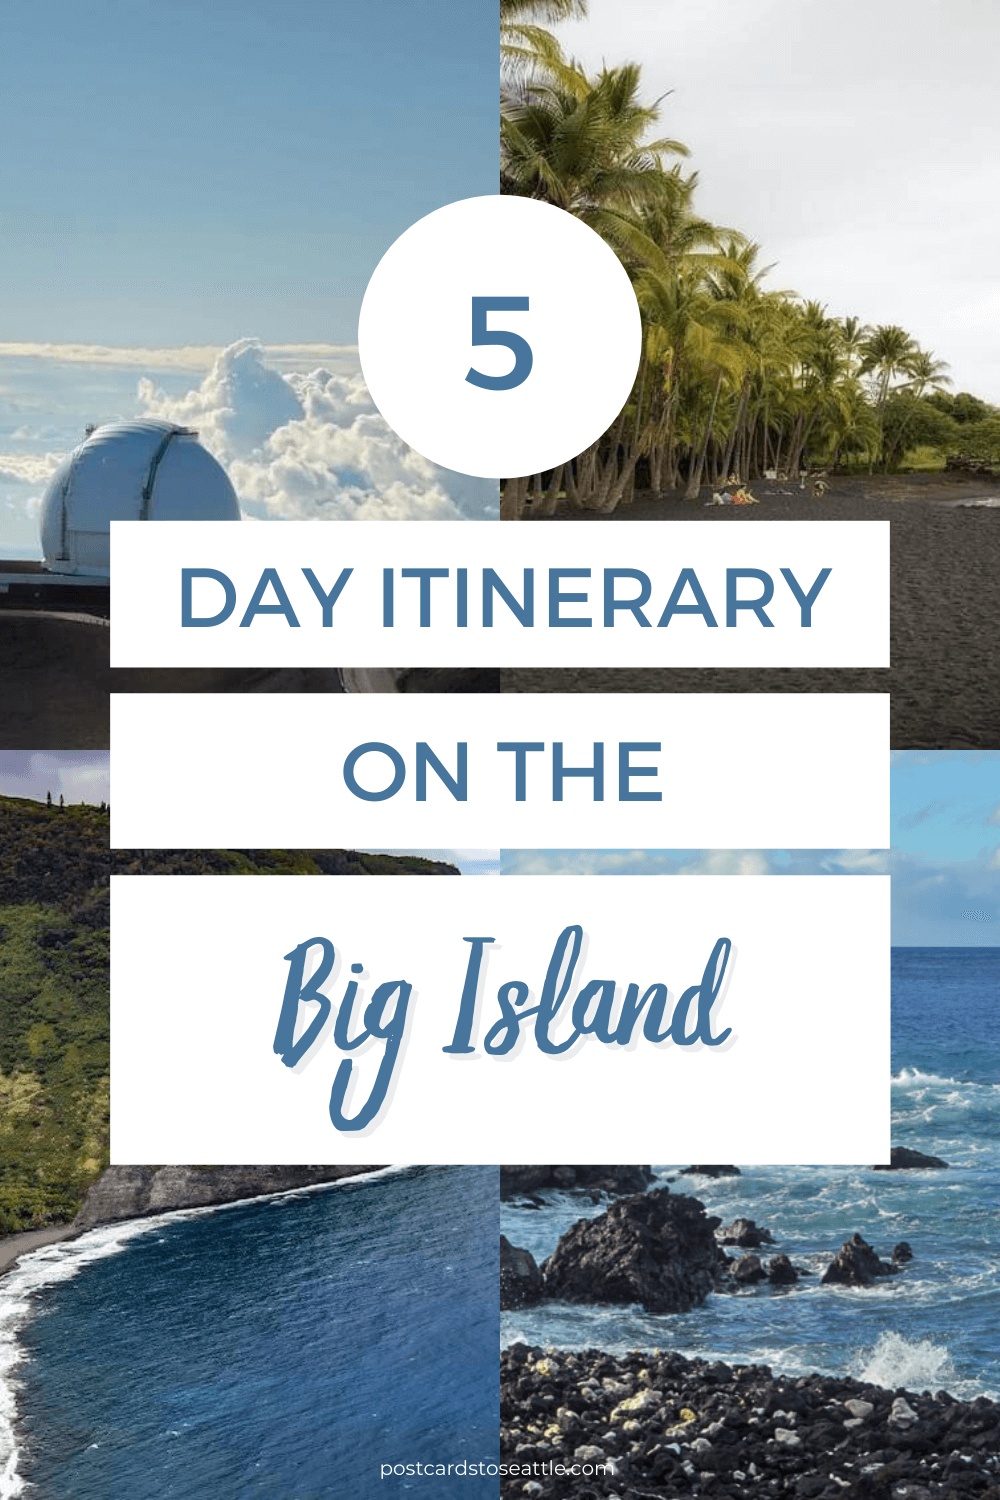 The Big Island 5 Day Itinerary You\'ll Want to Copy